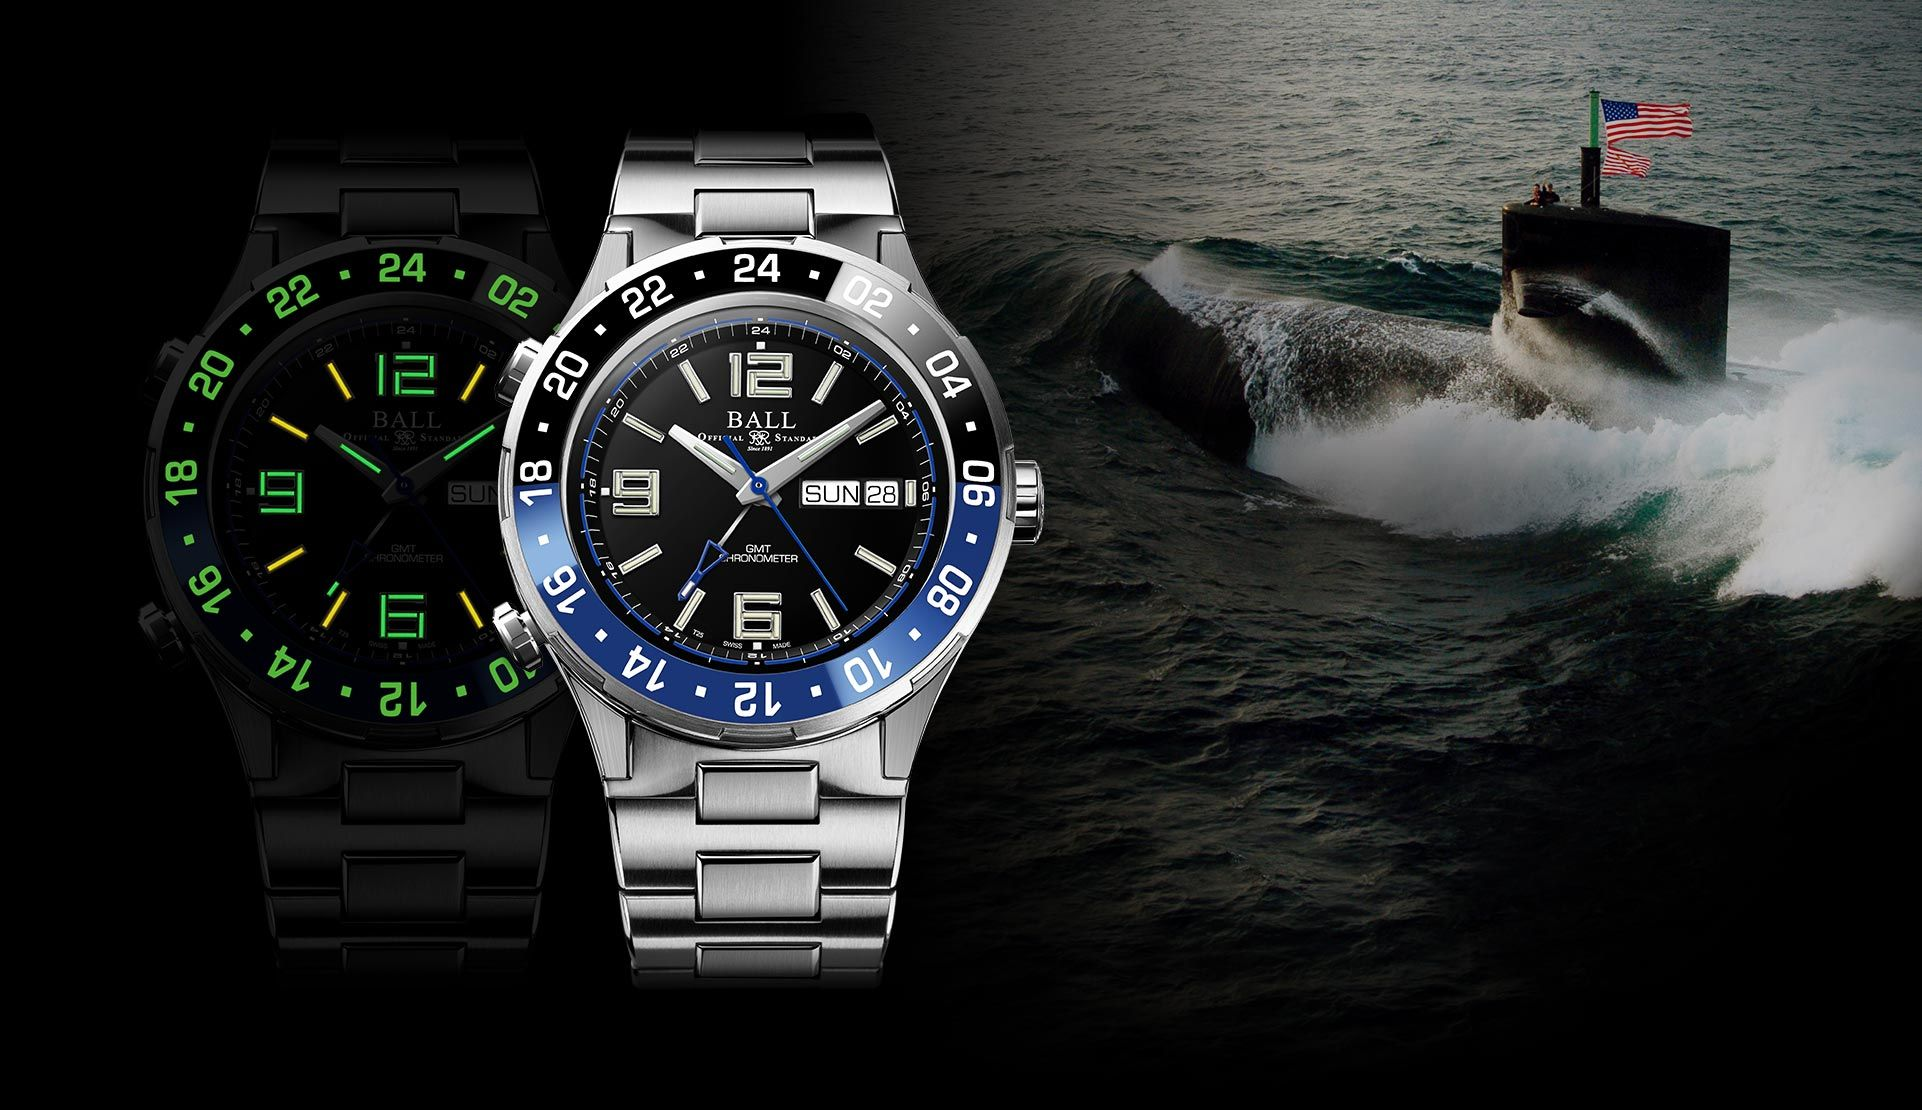 Ball Watch Online Boutique Military Watch Company Watches Online Military Watches